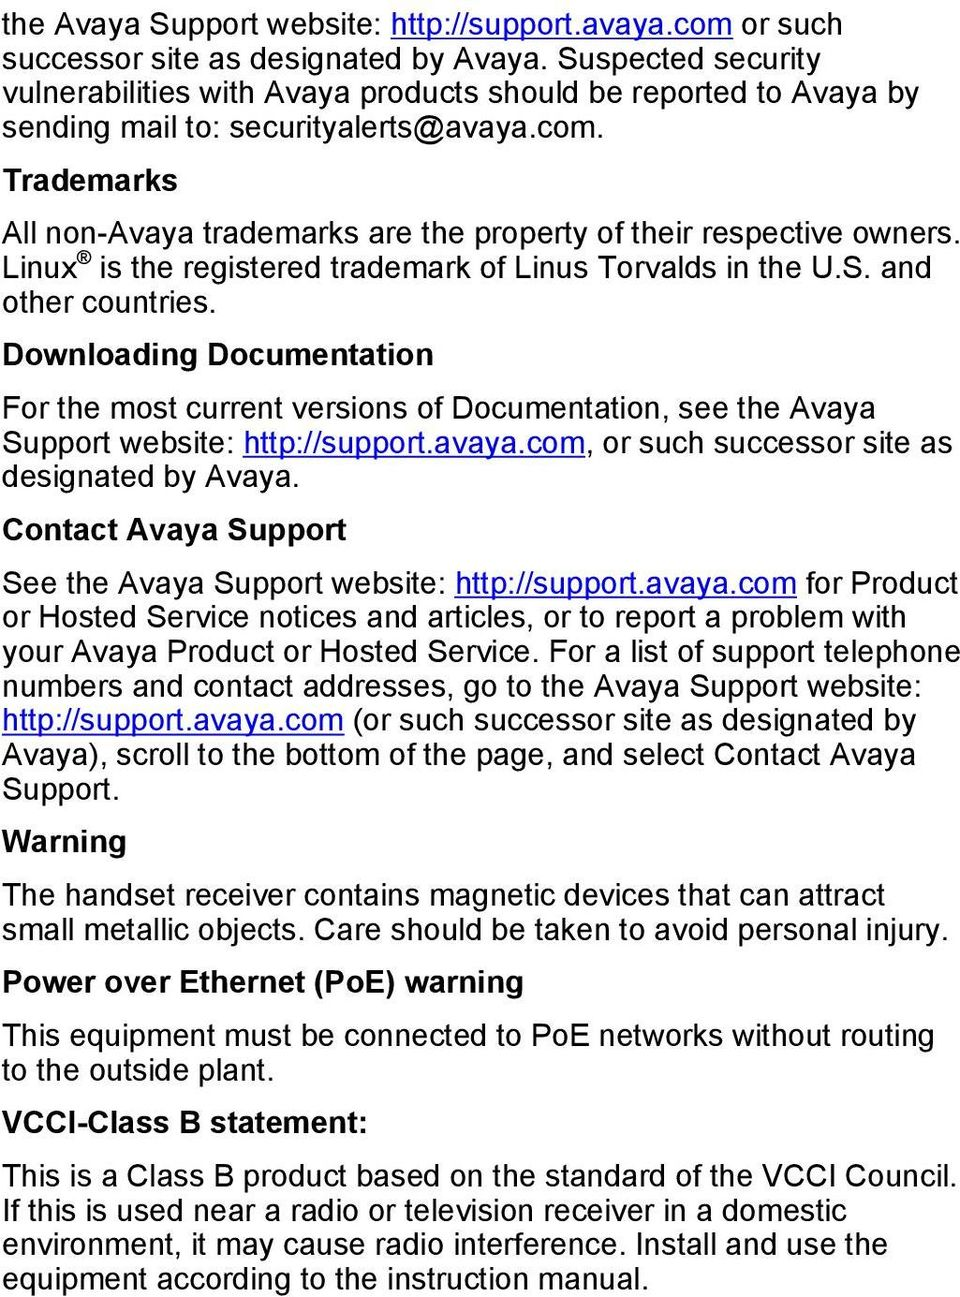 Trademarks All non-avaya trademarks are the property of their respective owners. Linux is the registered trademark of Linus Torvalds in the U.S. and other countries.